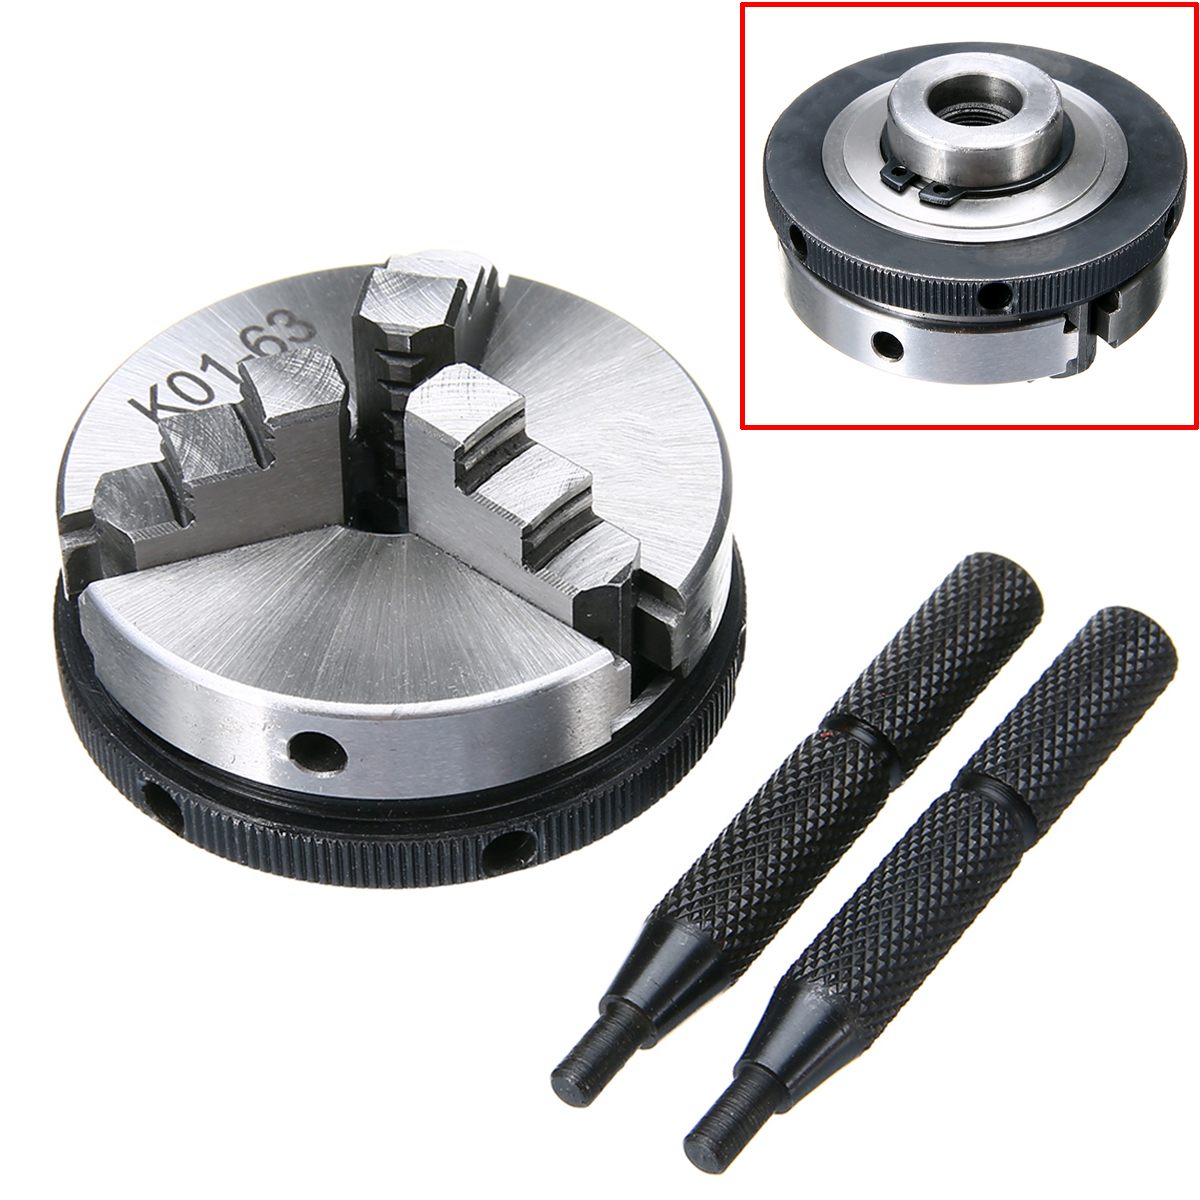 "1pc K01-63 63mm 3 Jaw Metal Lathe Chuck 2.5"" M14 Mini Metalworking Machine Accessories Tool with 2pcs Rods Mayitr"